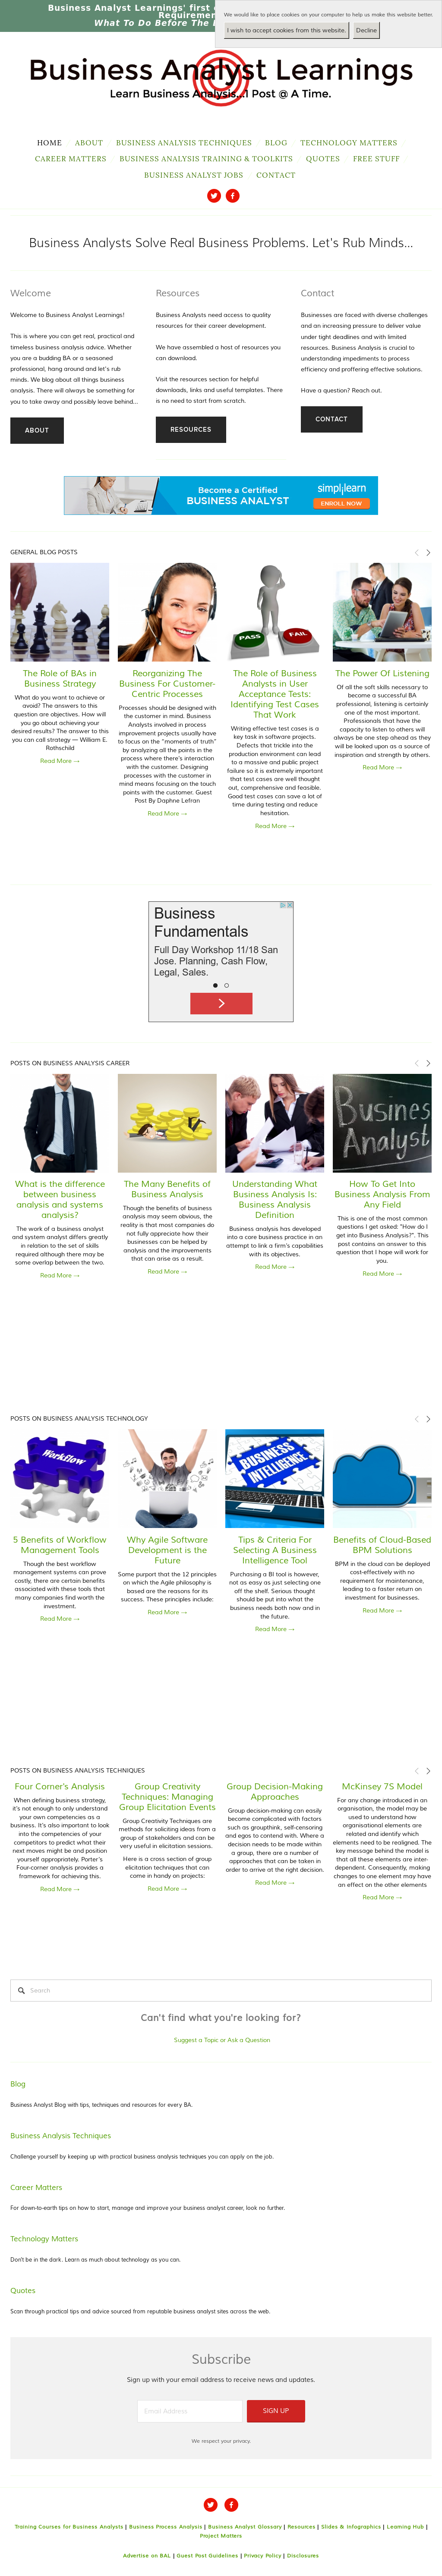 Business Analyst Learnings Competitors, Revenue and Employees